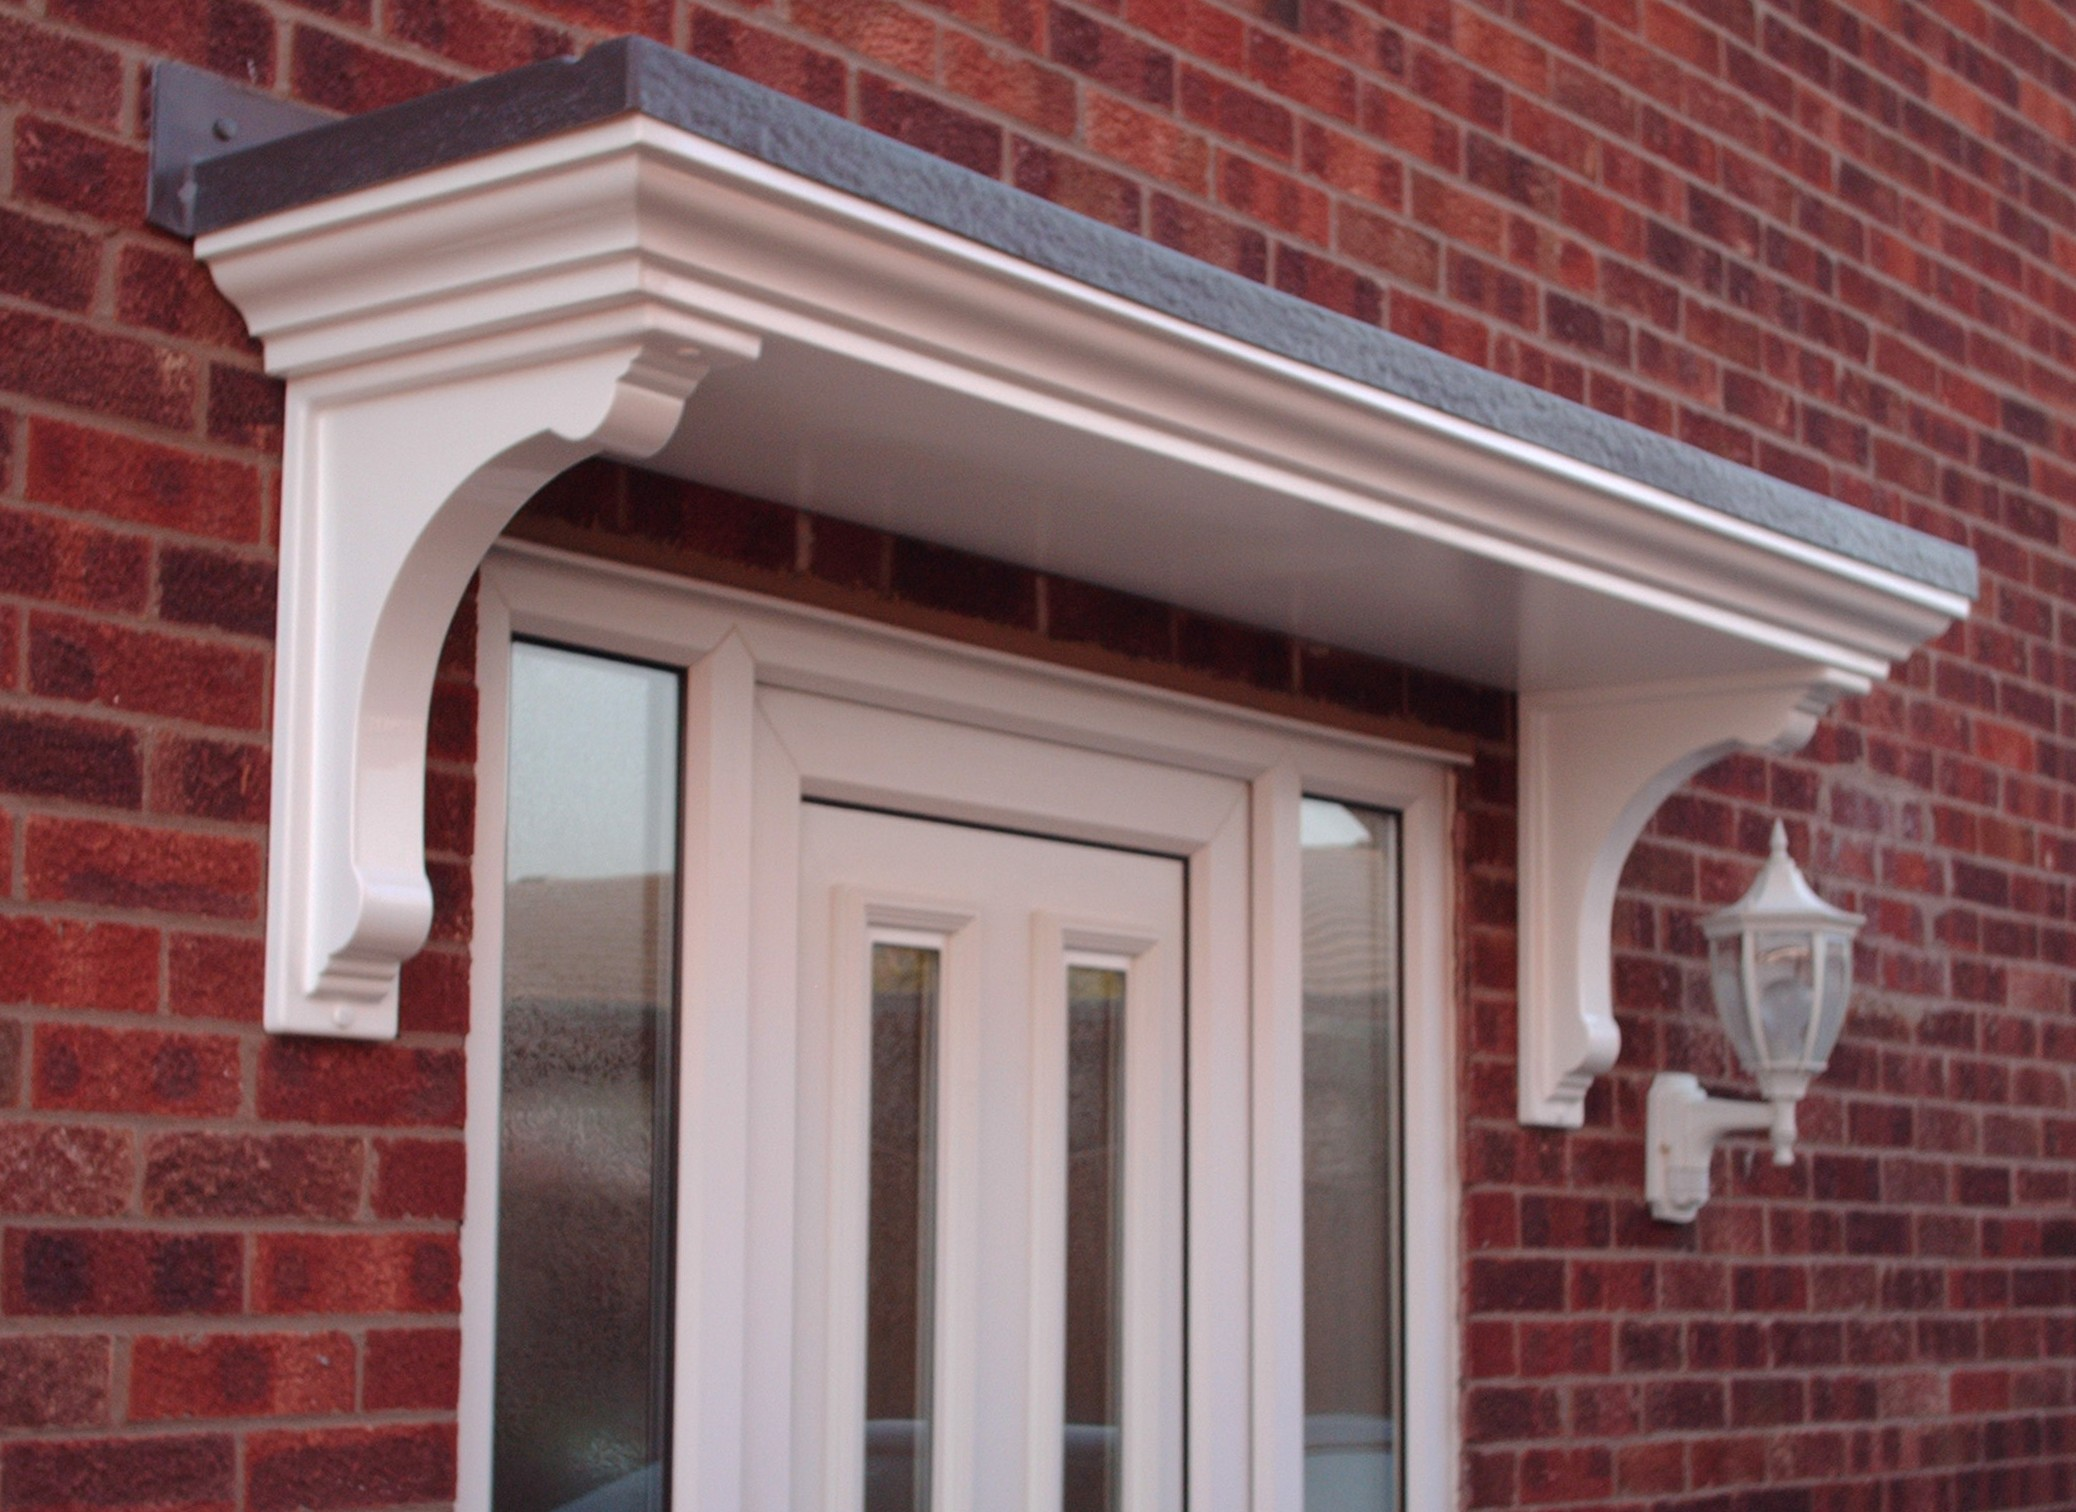 Protect your front by having classy front door canopy